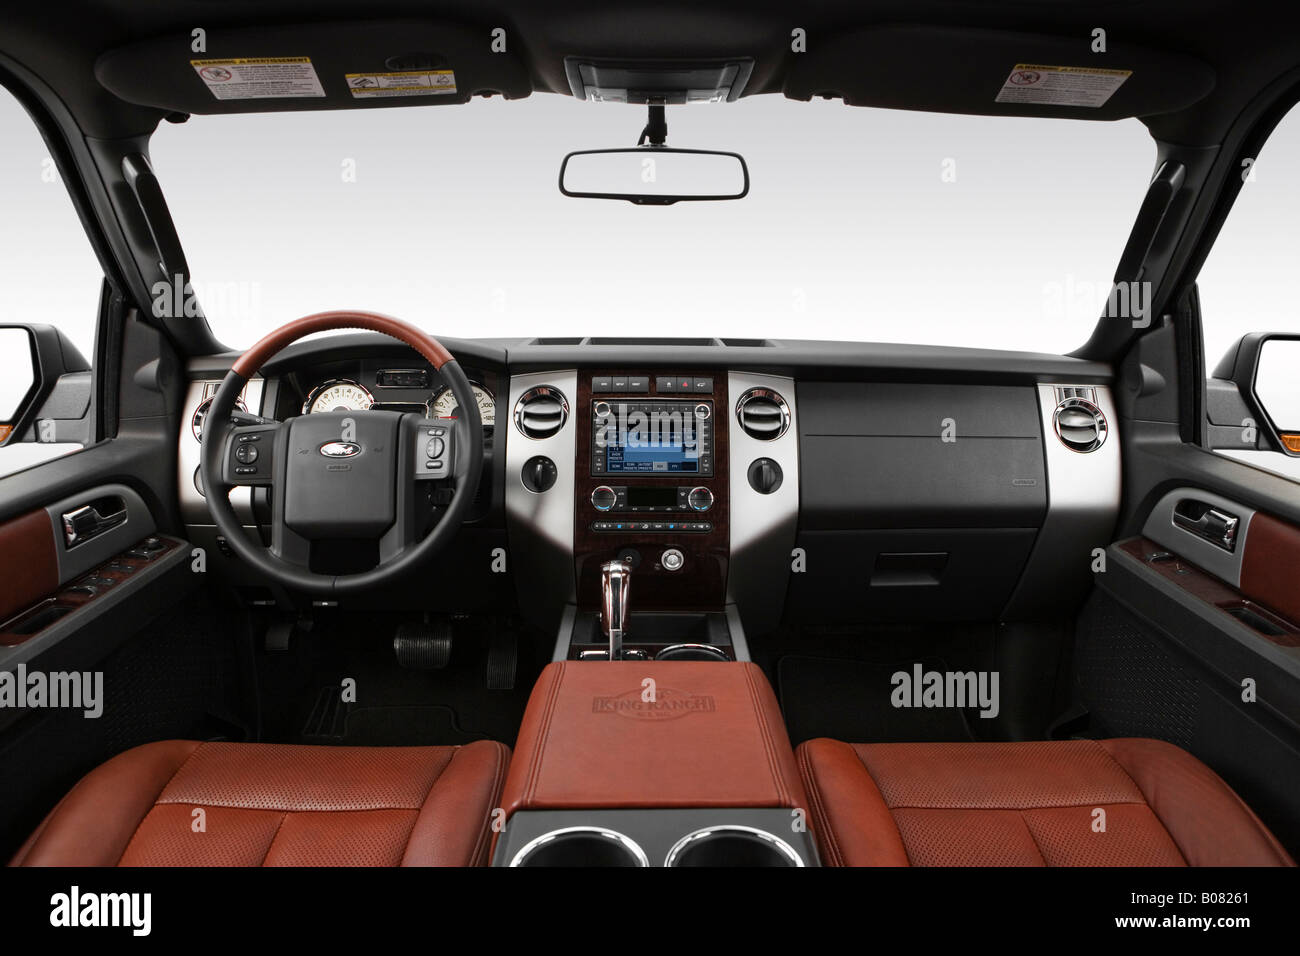 2008 ford expedition el king ranch in black dashboard center console gear shifter view